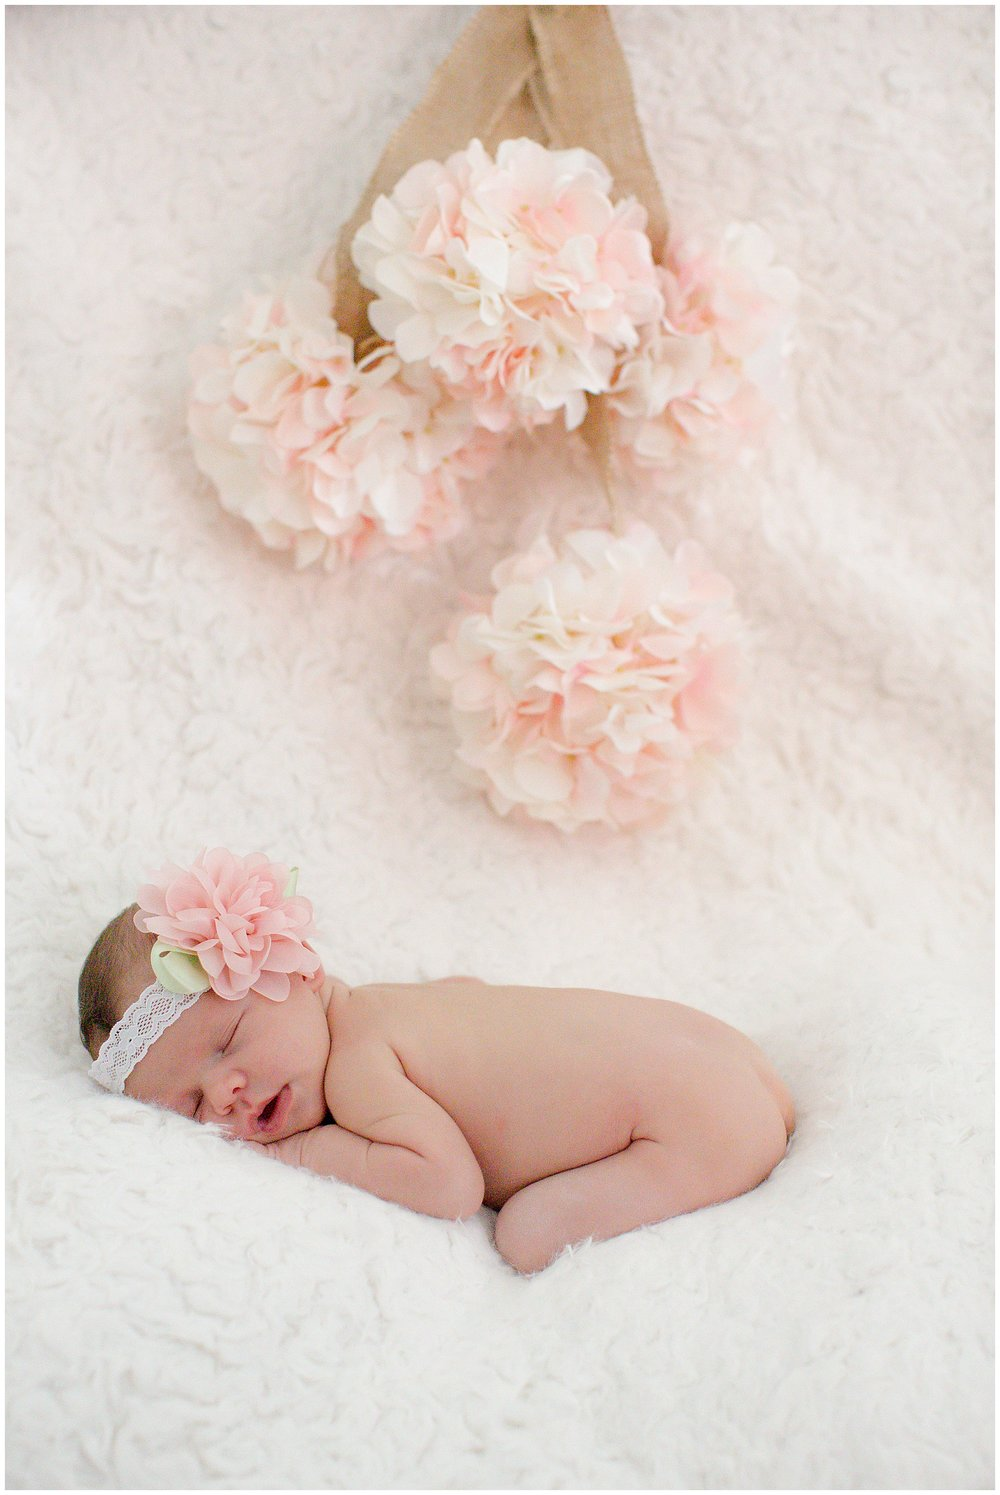 Letendre-newborn-session_0012.jpg